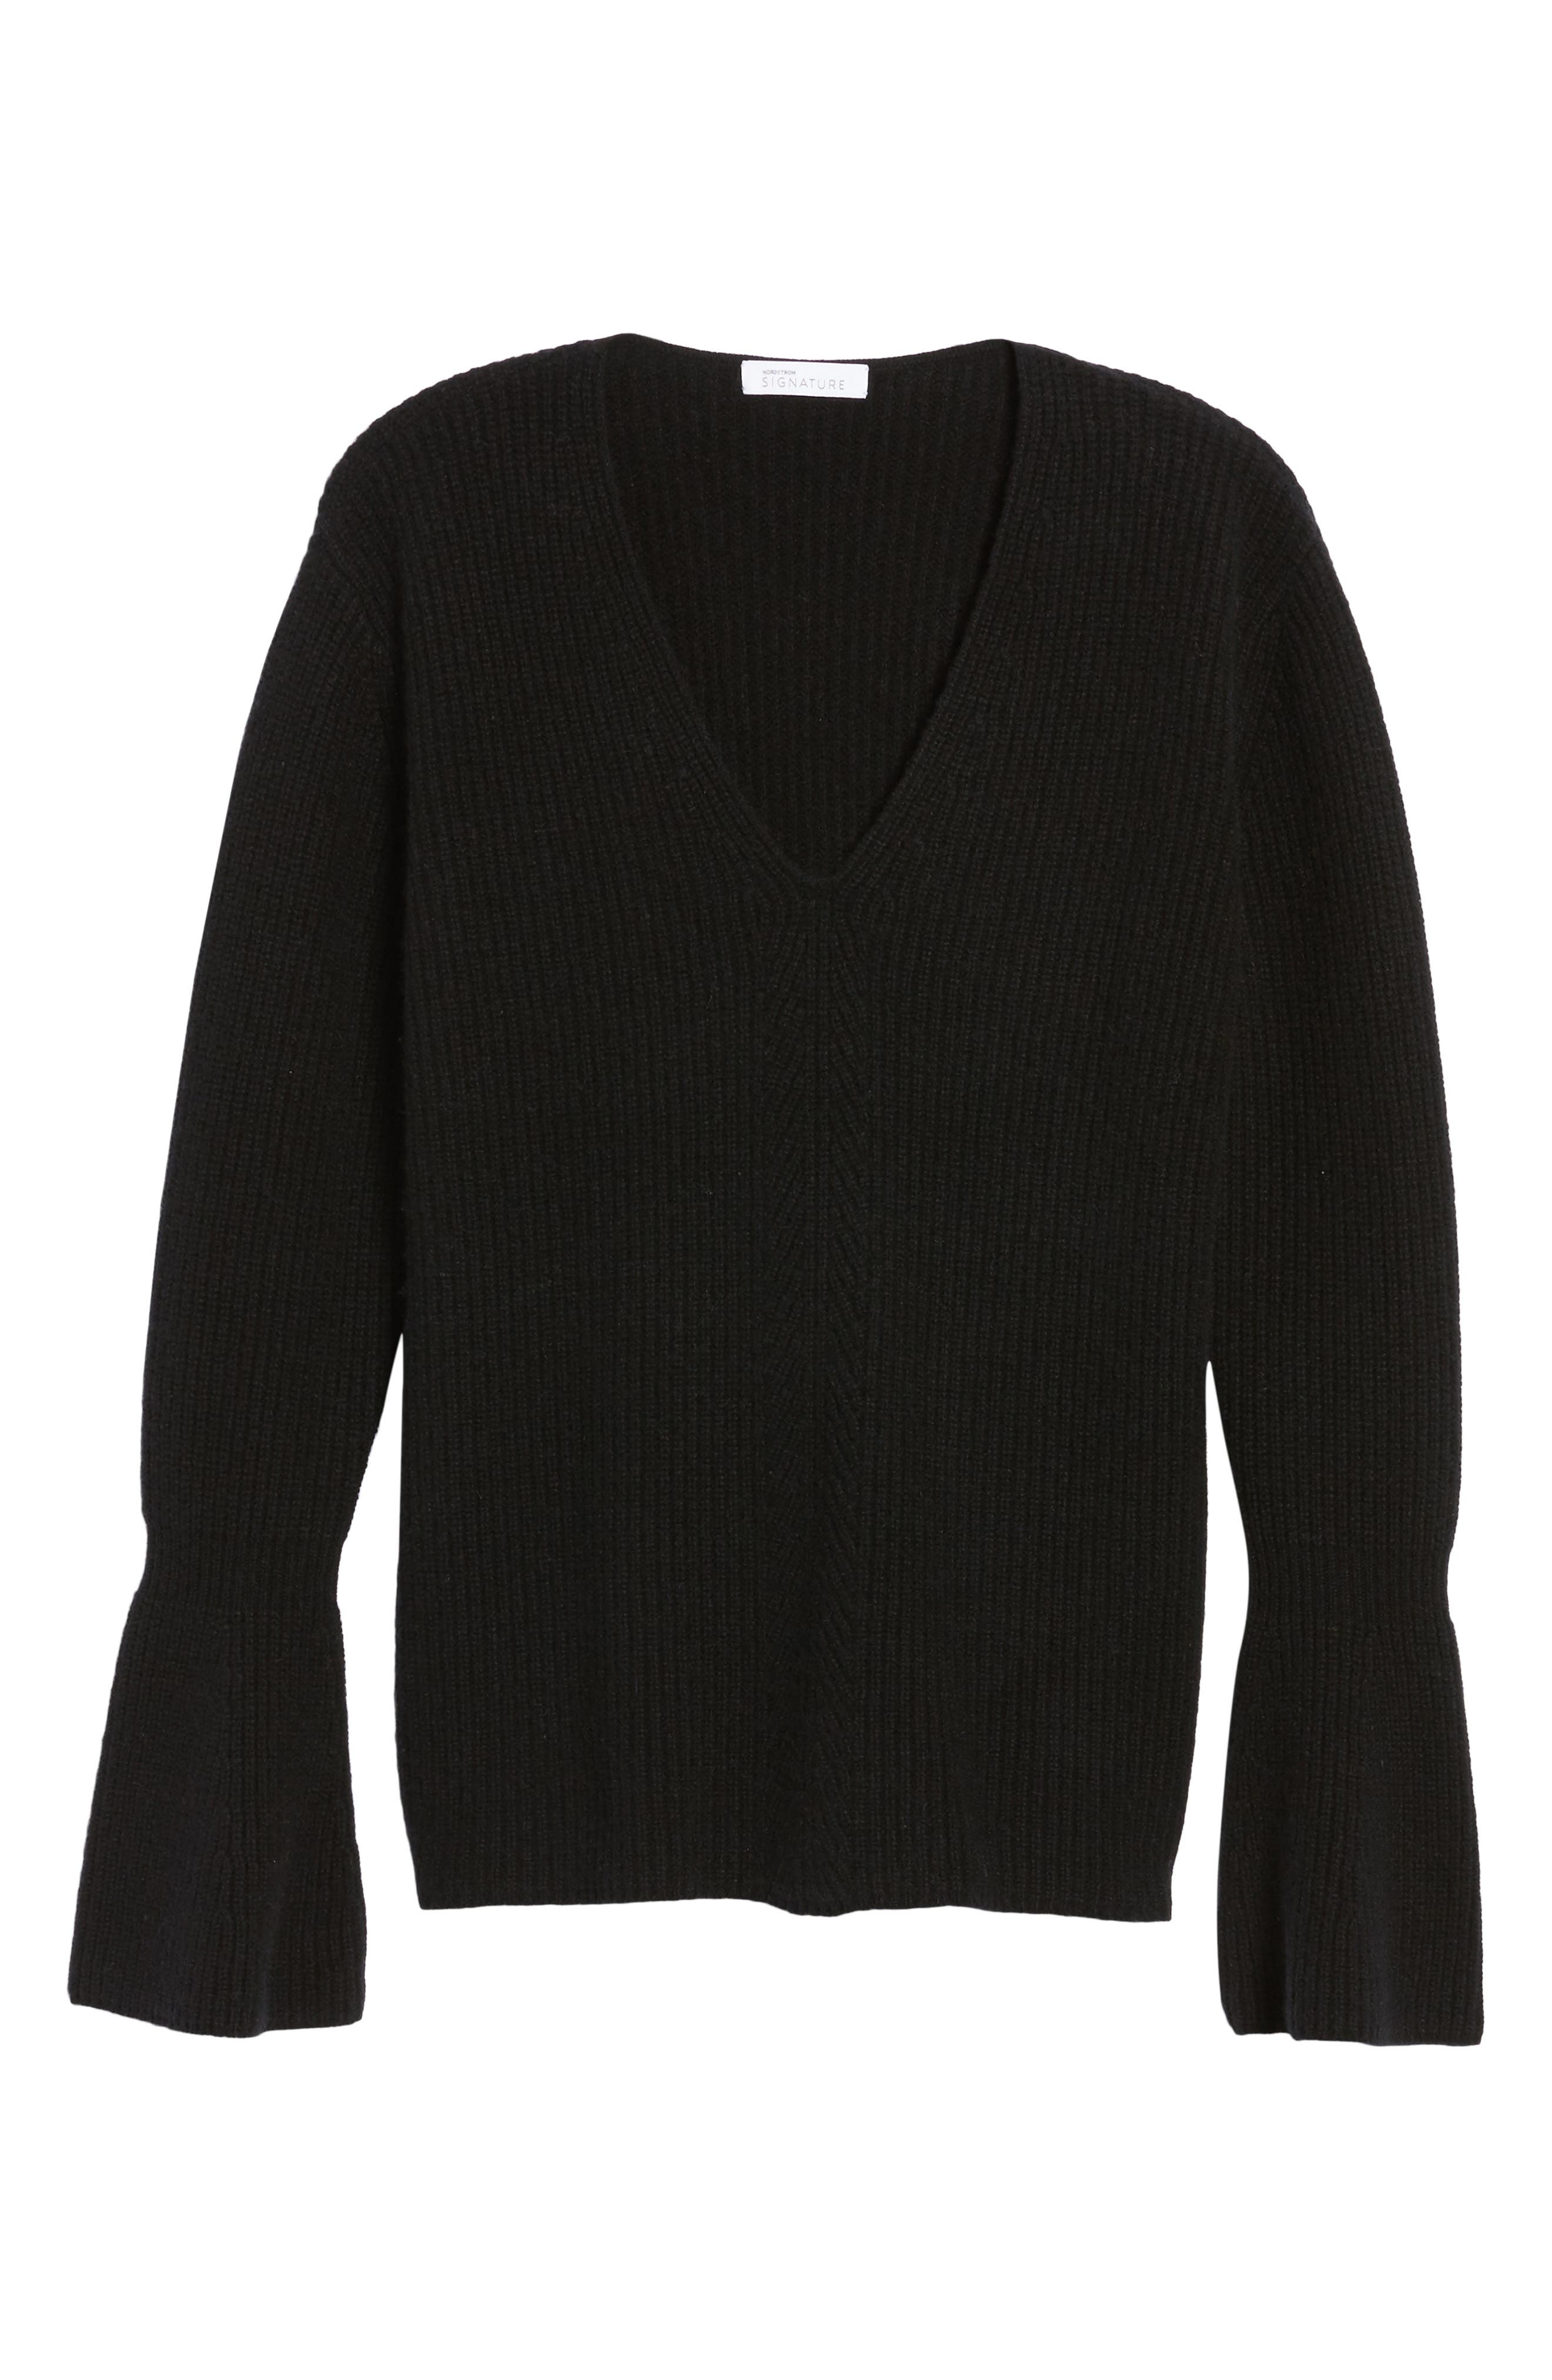 Rib Knit Cashmere Bell Sleeve Sweater,                             Alternate thumbnail 6, color,                             Black